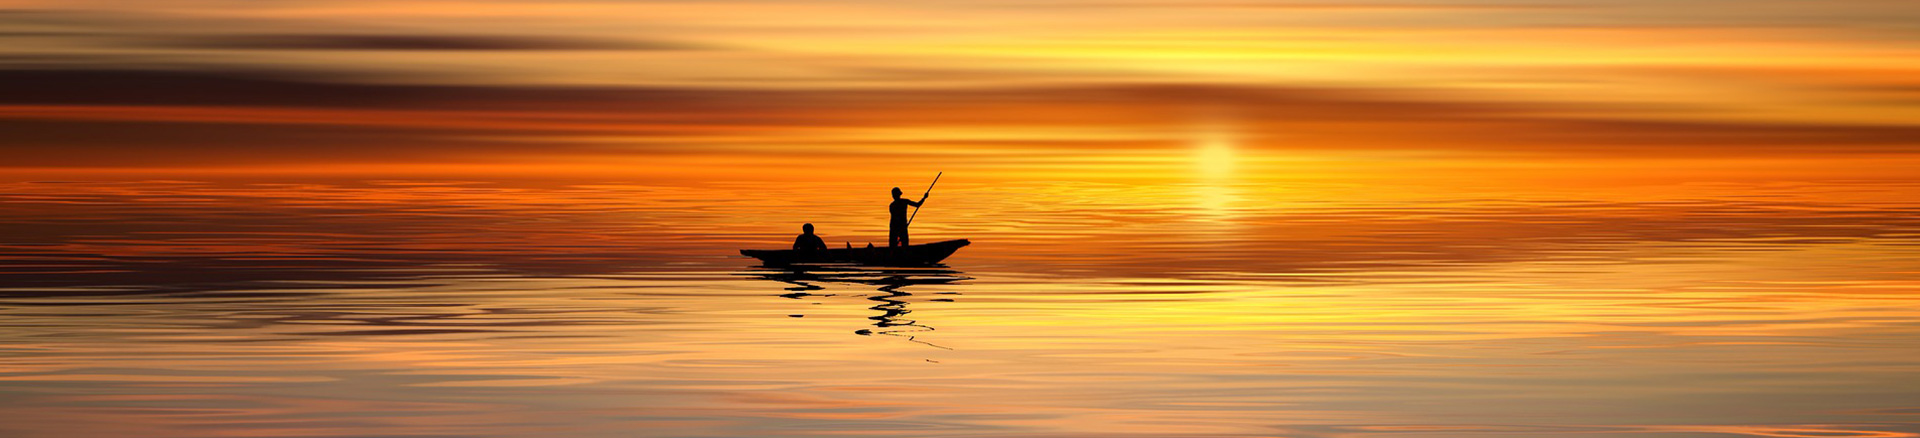 life coaching and support banner sunset boat